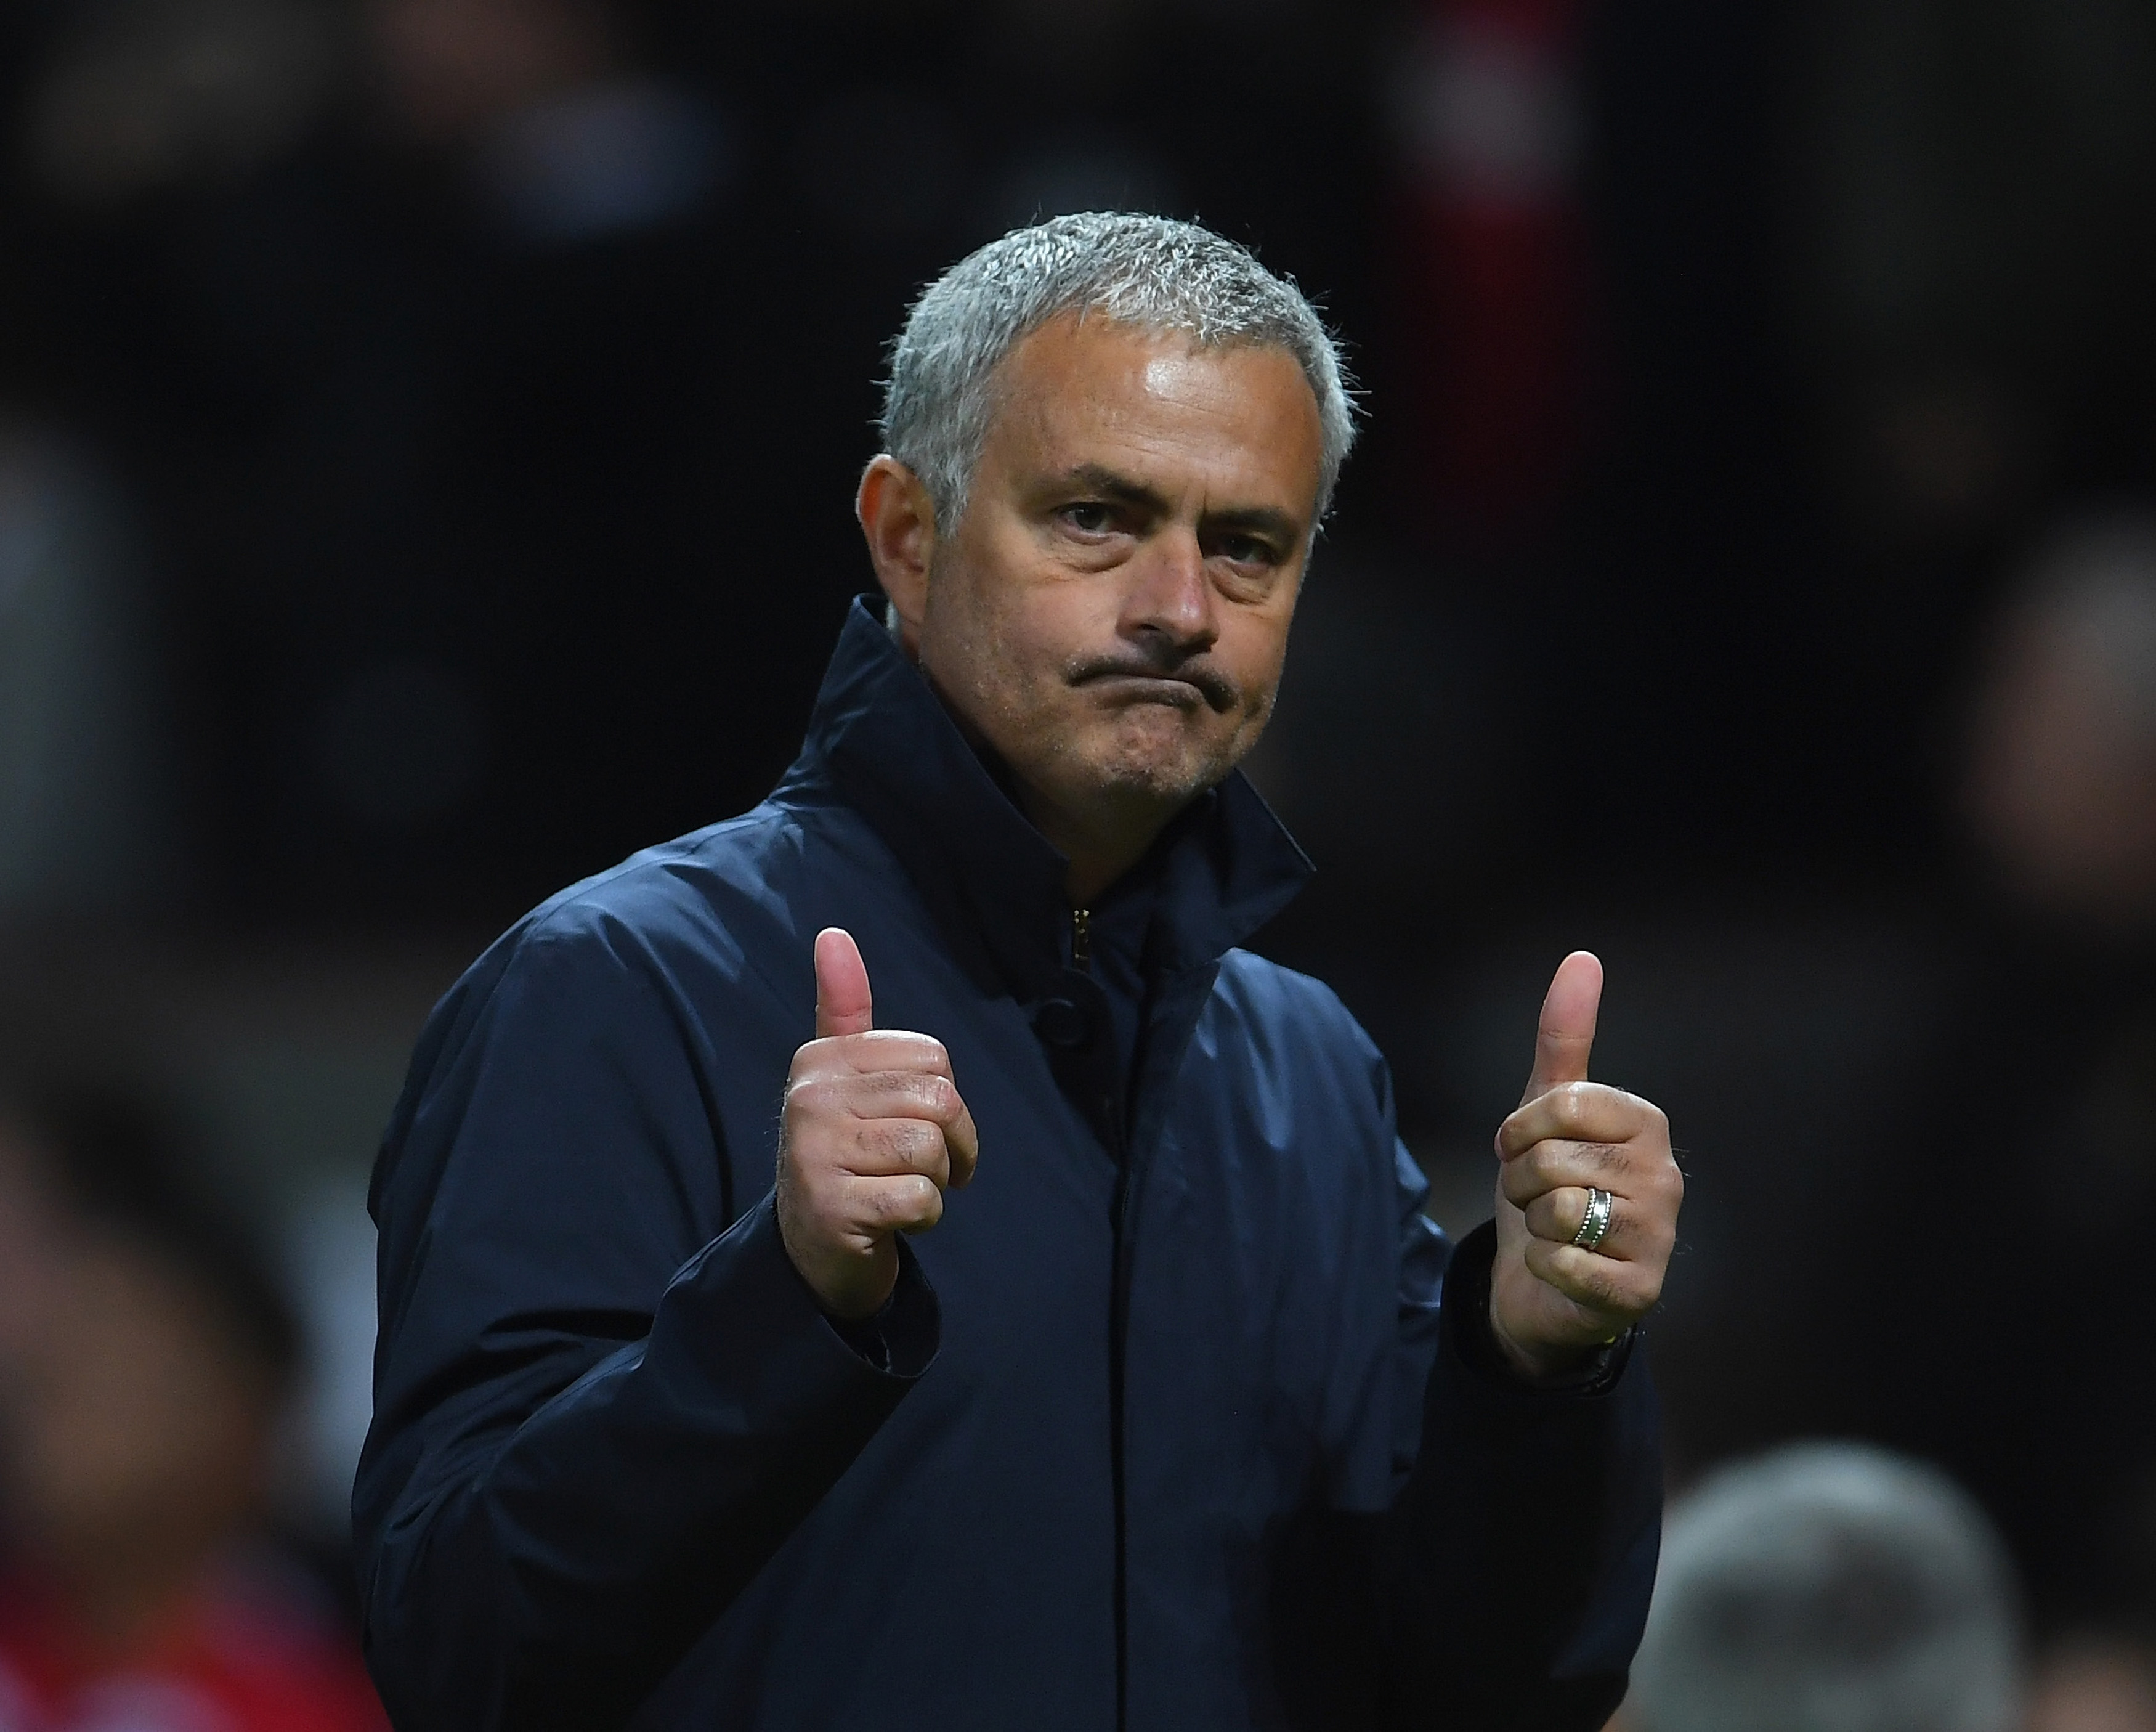 Jose Mourinho heaped praises on the Old Trafford faithful (Photo courtesy Laurence Griffiths/Getty Images)